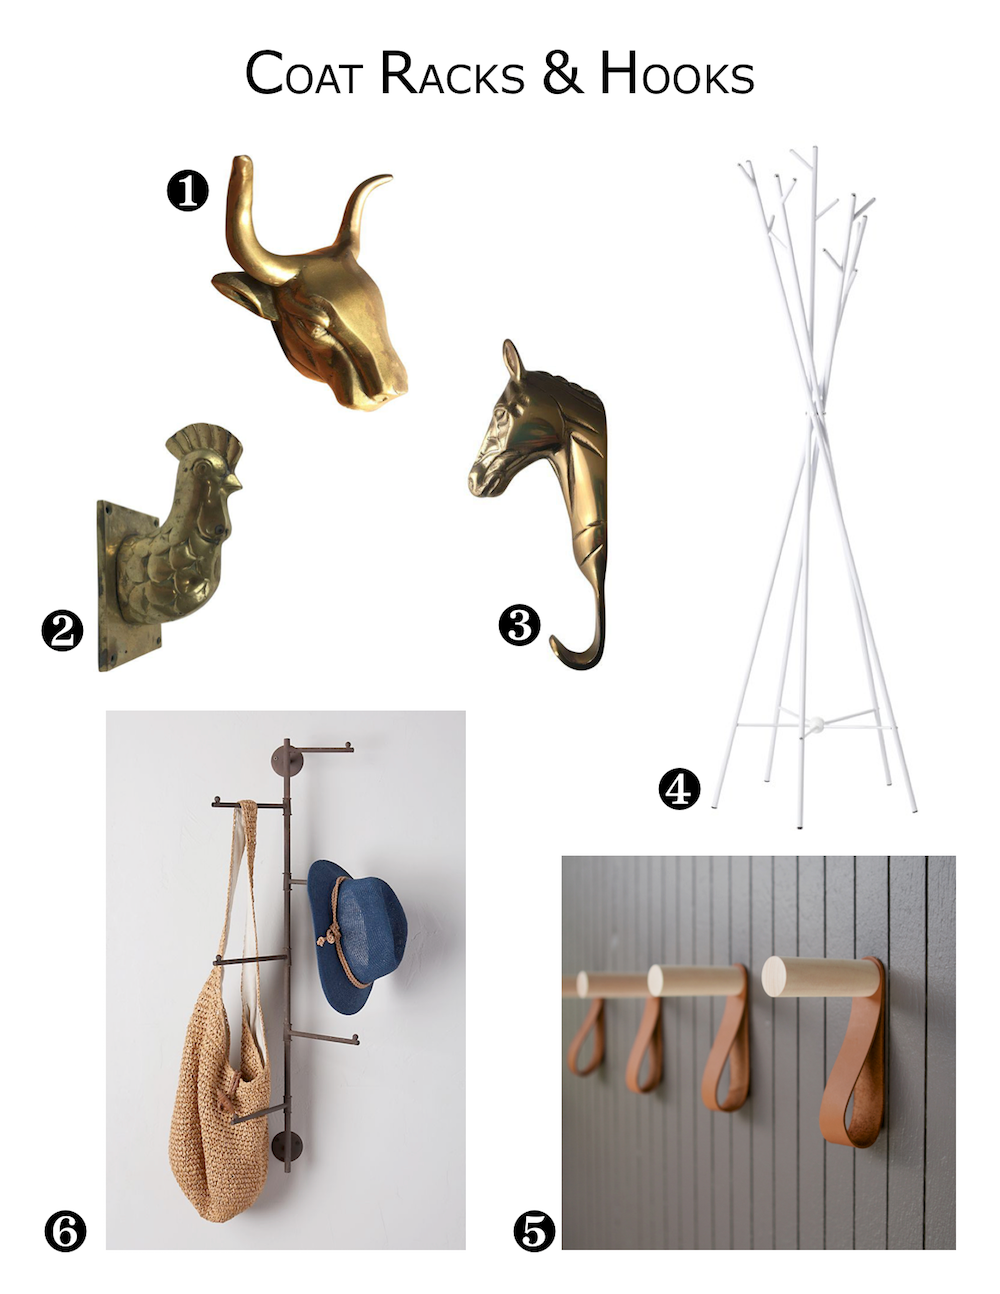 Vintage Brass Farm Animal Hooks, Modern White Metal Coat Rack, Wall Mounted Rustic Metal Coat Rack, Modern Wood and Leather Wall Hooks